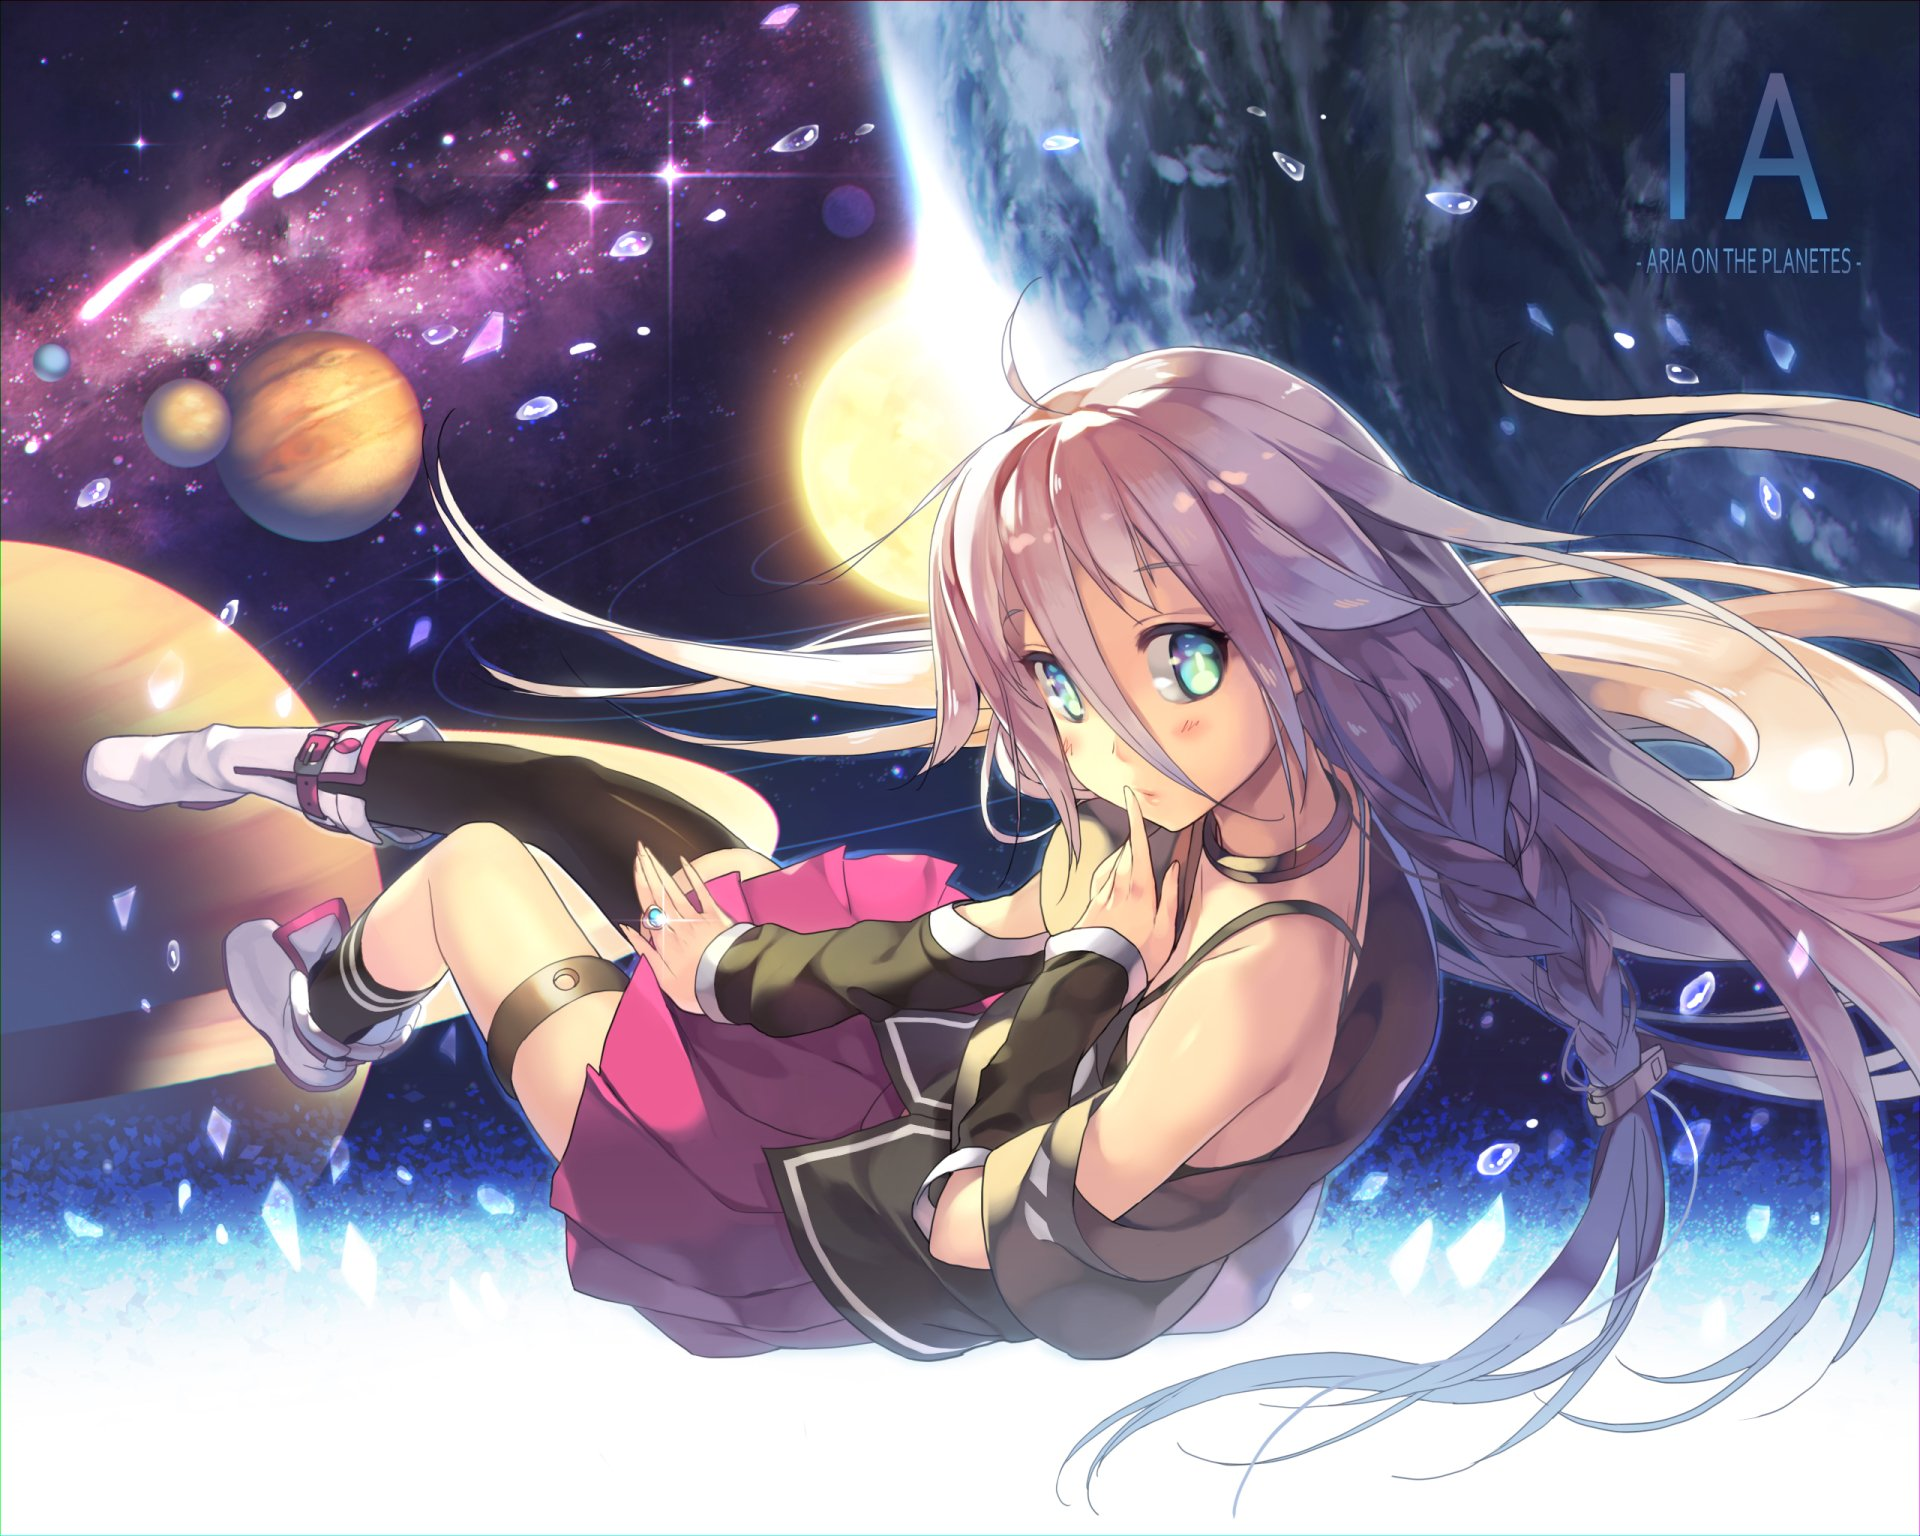 Anime - Vocaloid  IA (Vocaloid) Long Hair White Hair Blue Eyes Space Planet Stars Skirt Braid Sun Wallpaper